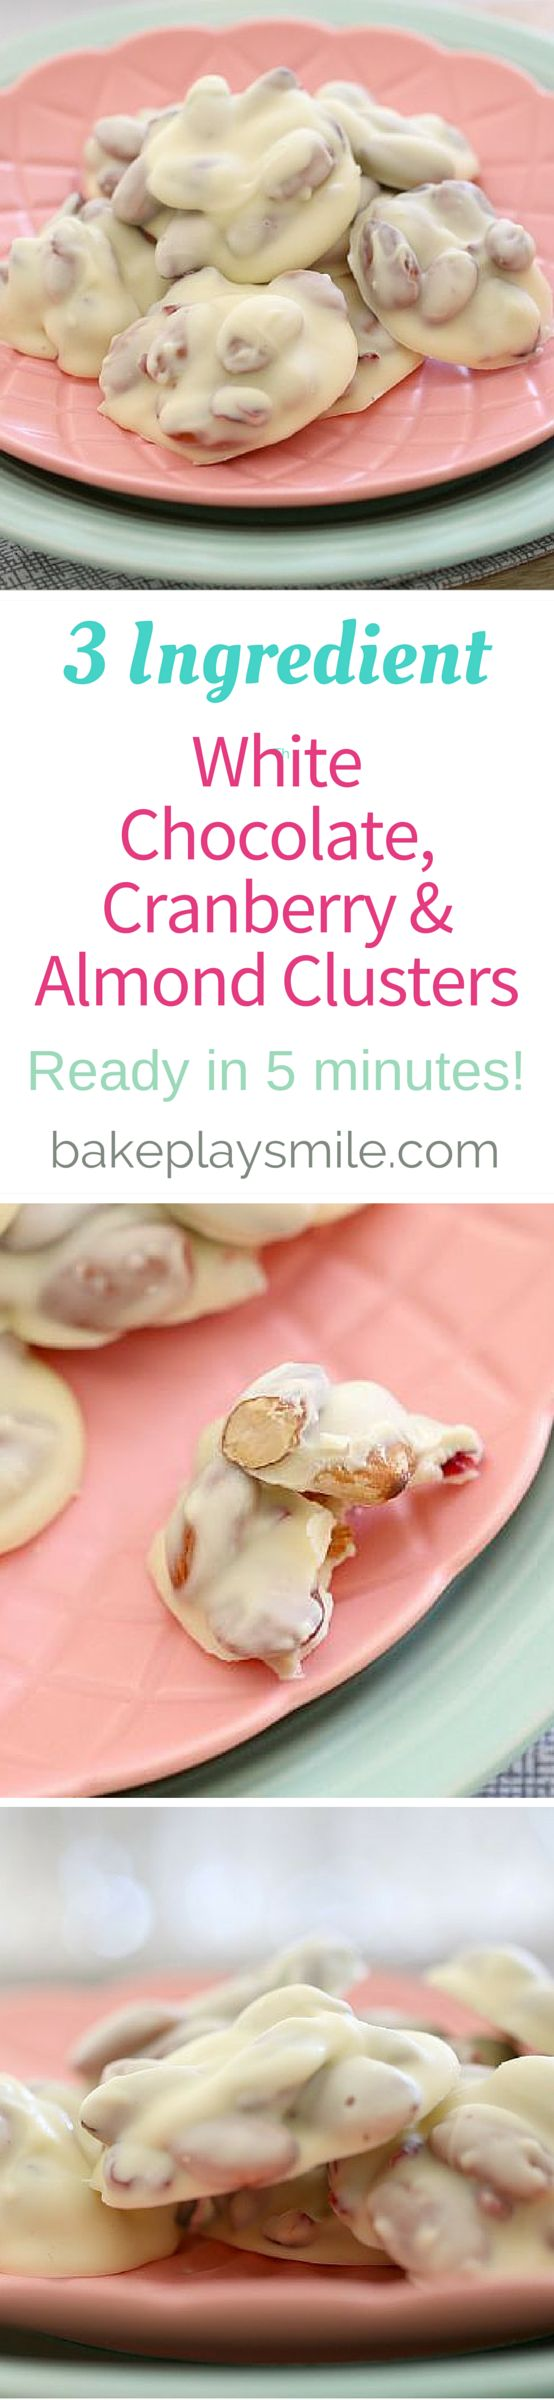 5 minutes and 3 ingredients is all it takes to make these super yummy clusters! You can use any type of chocolate you like - and why not mix and match with the fruit and nuts if you prefer!   Bake Play Smile #almond #cranberry #chocolate #clusters #nobake #easy #recipe #3ingredient #conventional #thermomix